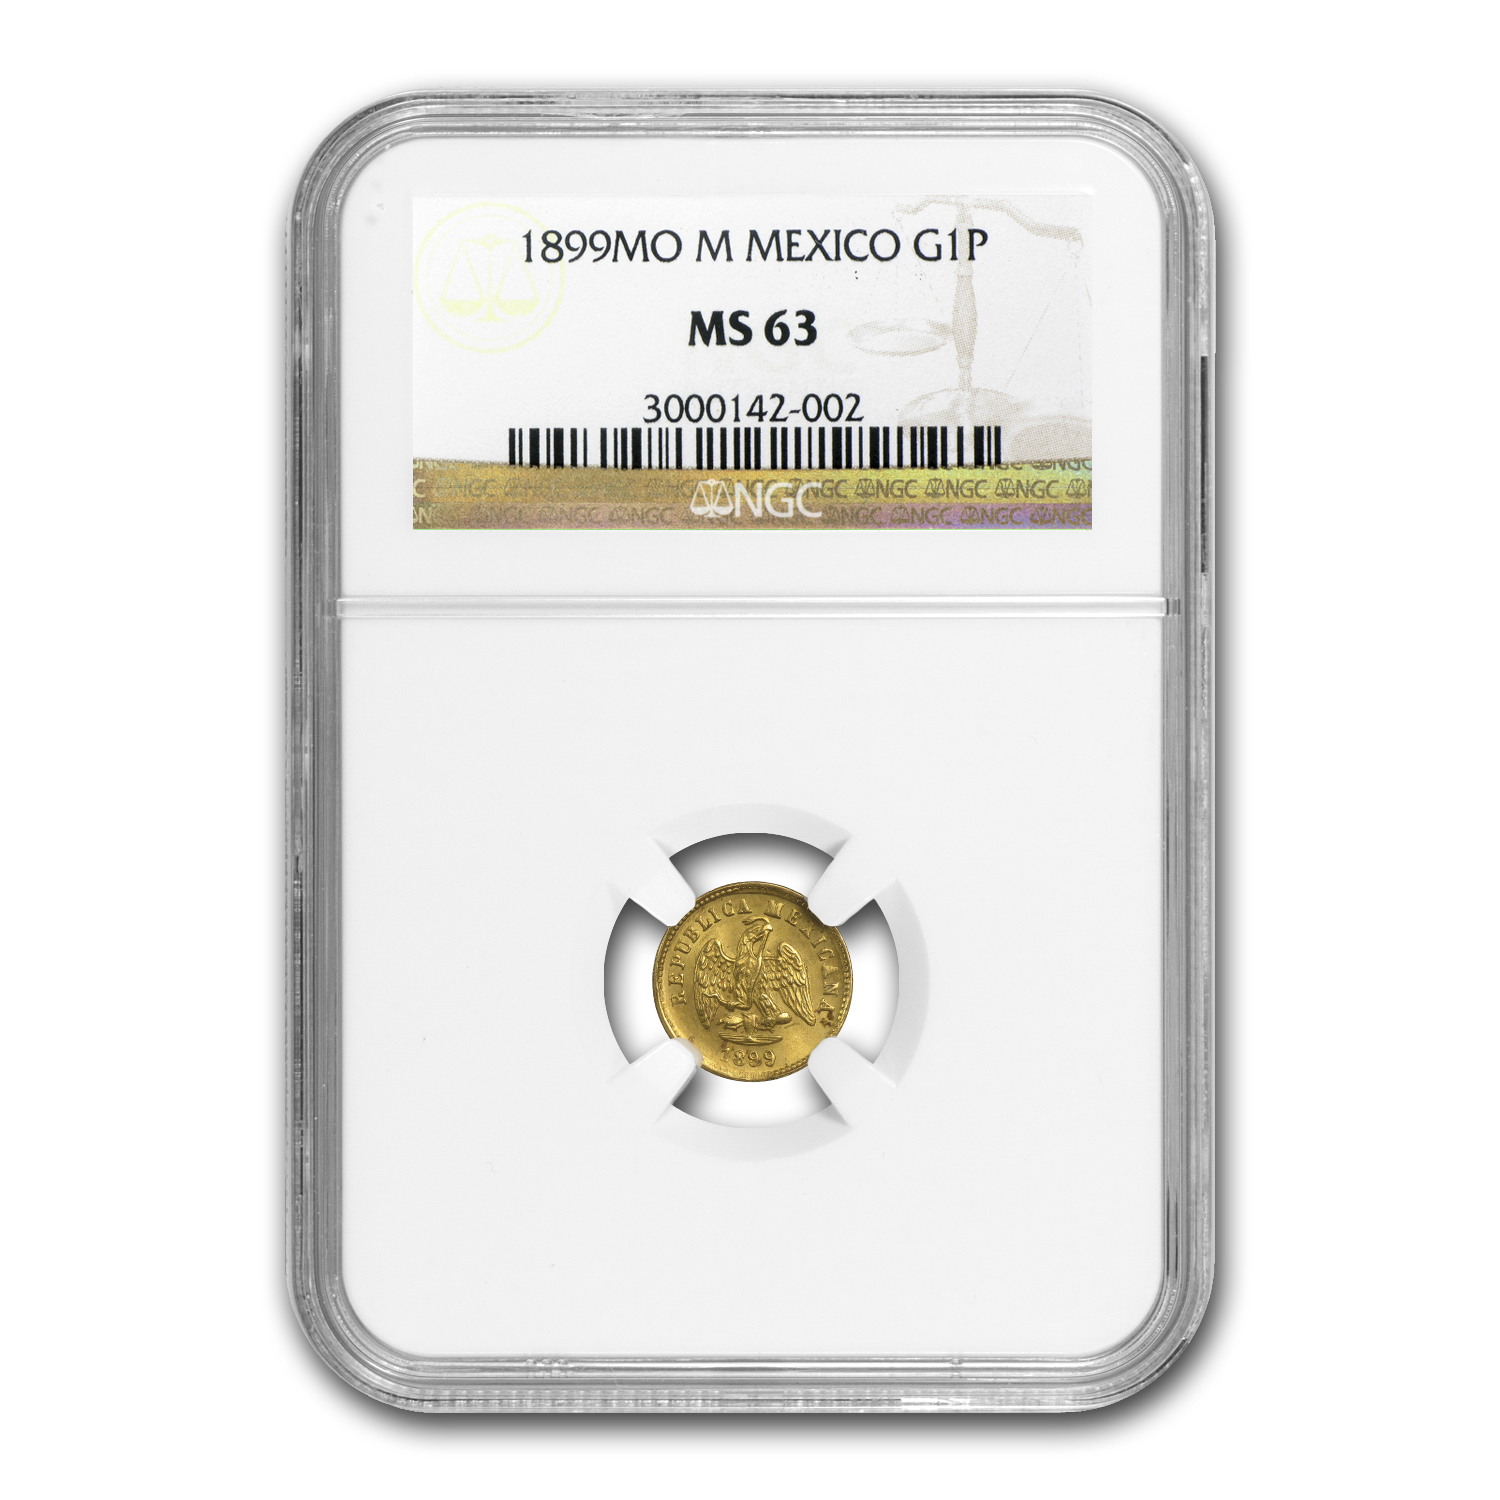 1899-Mo Mexico Gold Peso MS-63 NGC